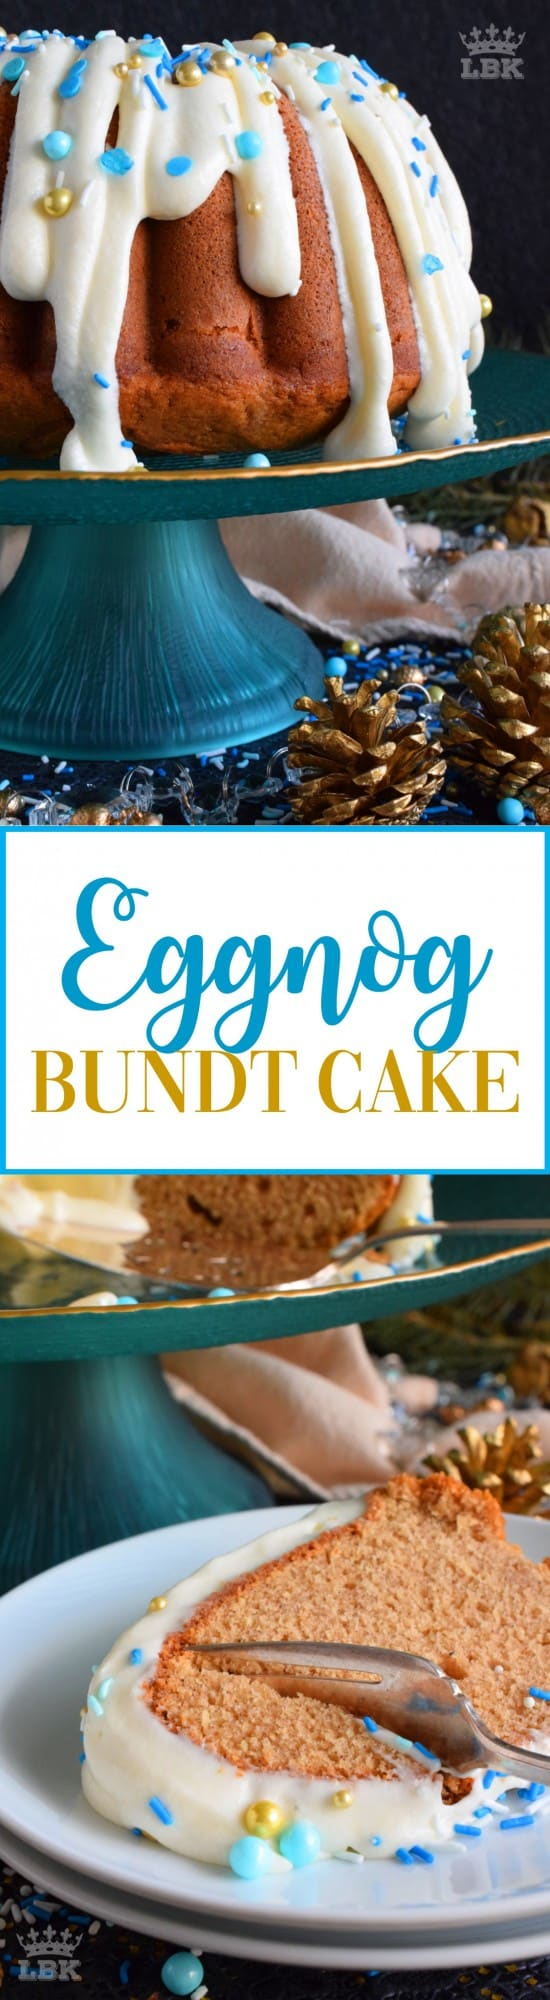 Eggnog Bundt Cake - If you don't care to drink eggnog, why not bake with it? This Eggnog Bundt Cake is very moist and is perfect for the holidays! #eggnog #bundt #cake #bundtbakers #christmas #holiday